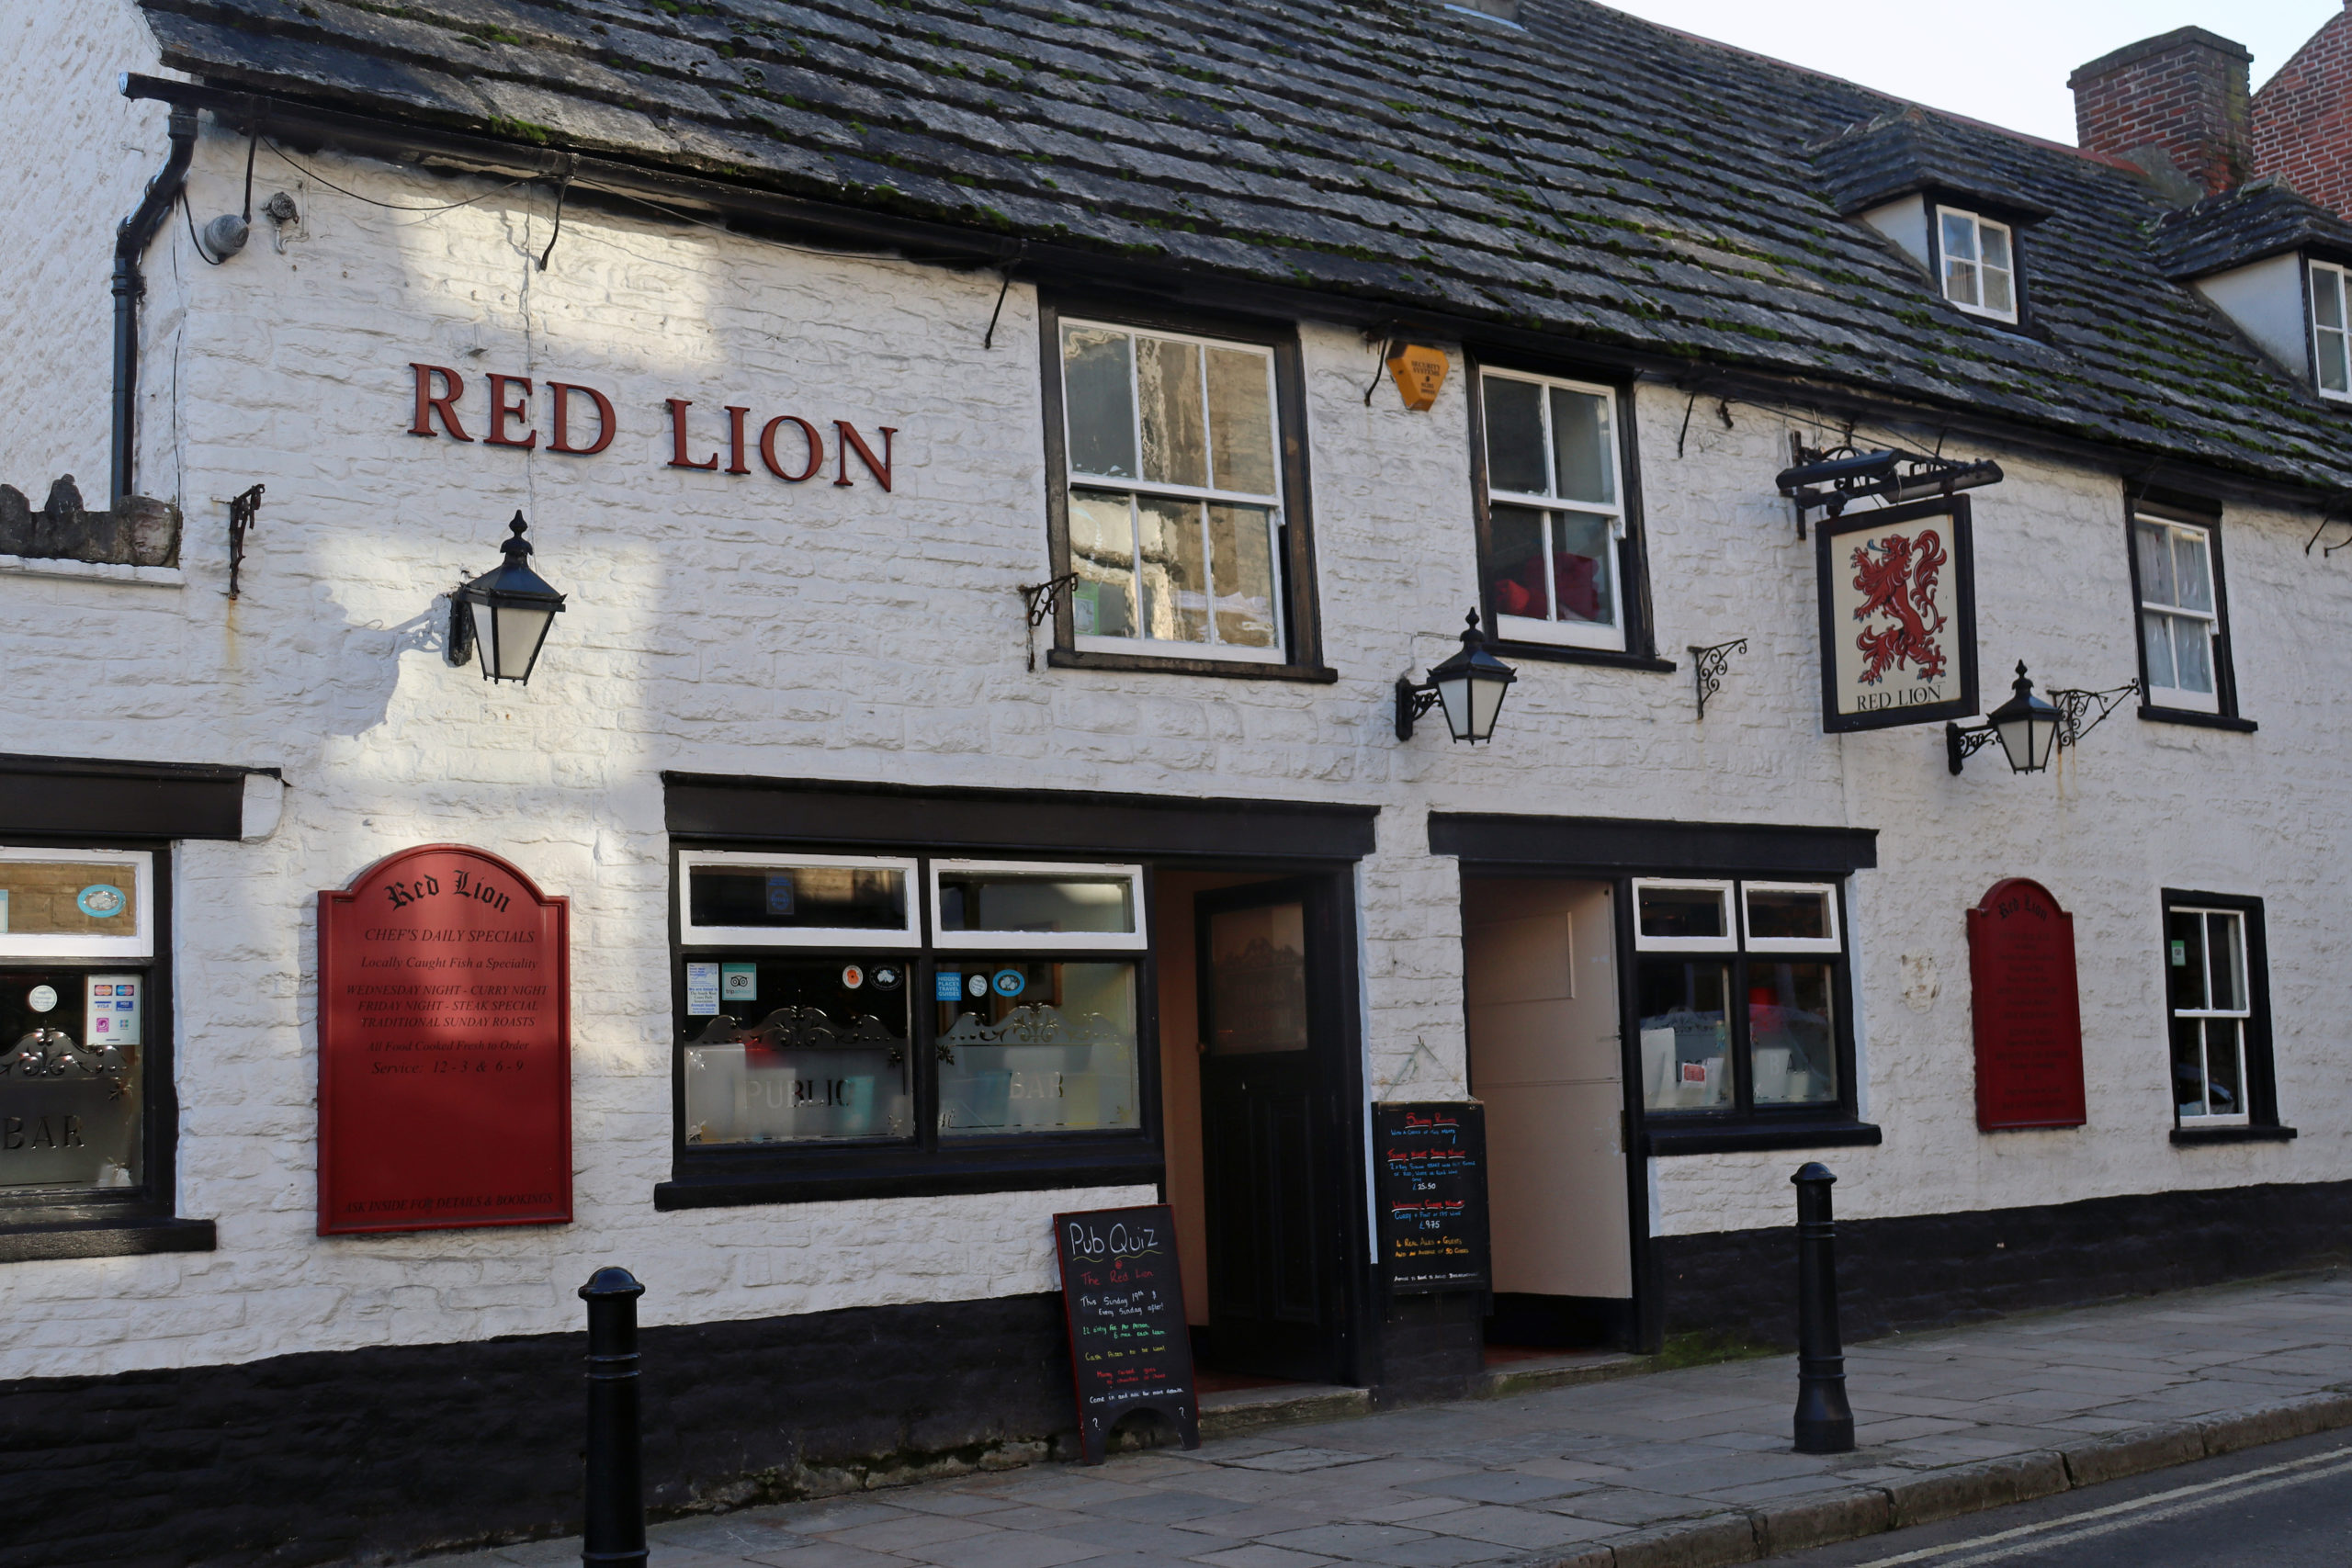 Exterior of the Red Lion pub